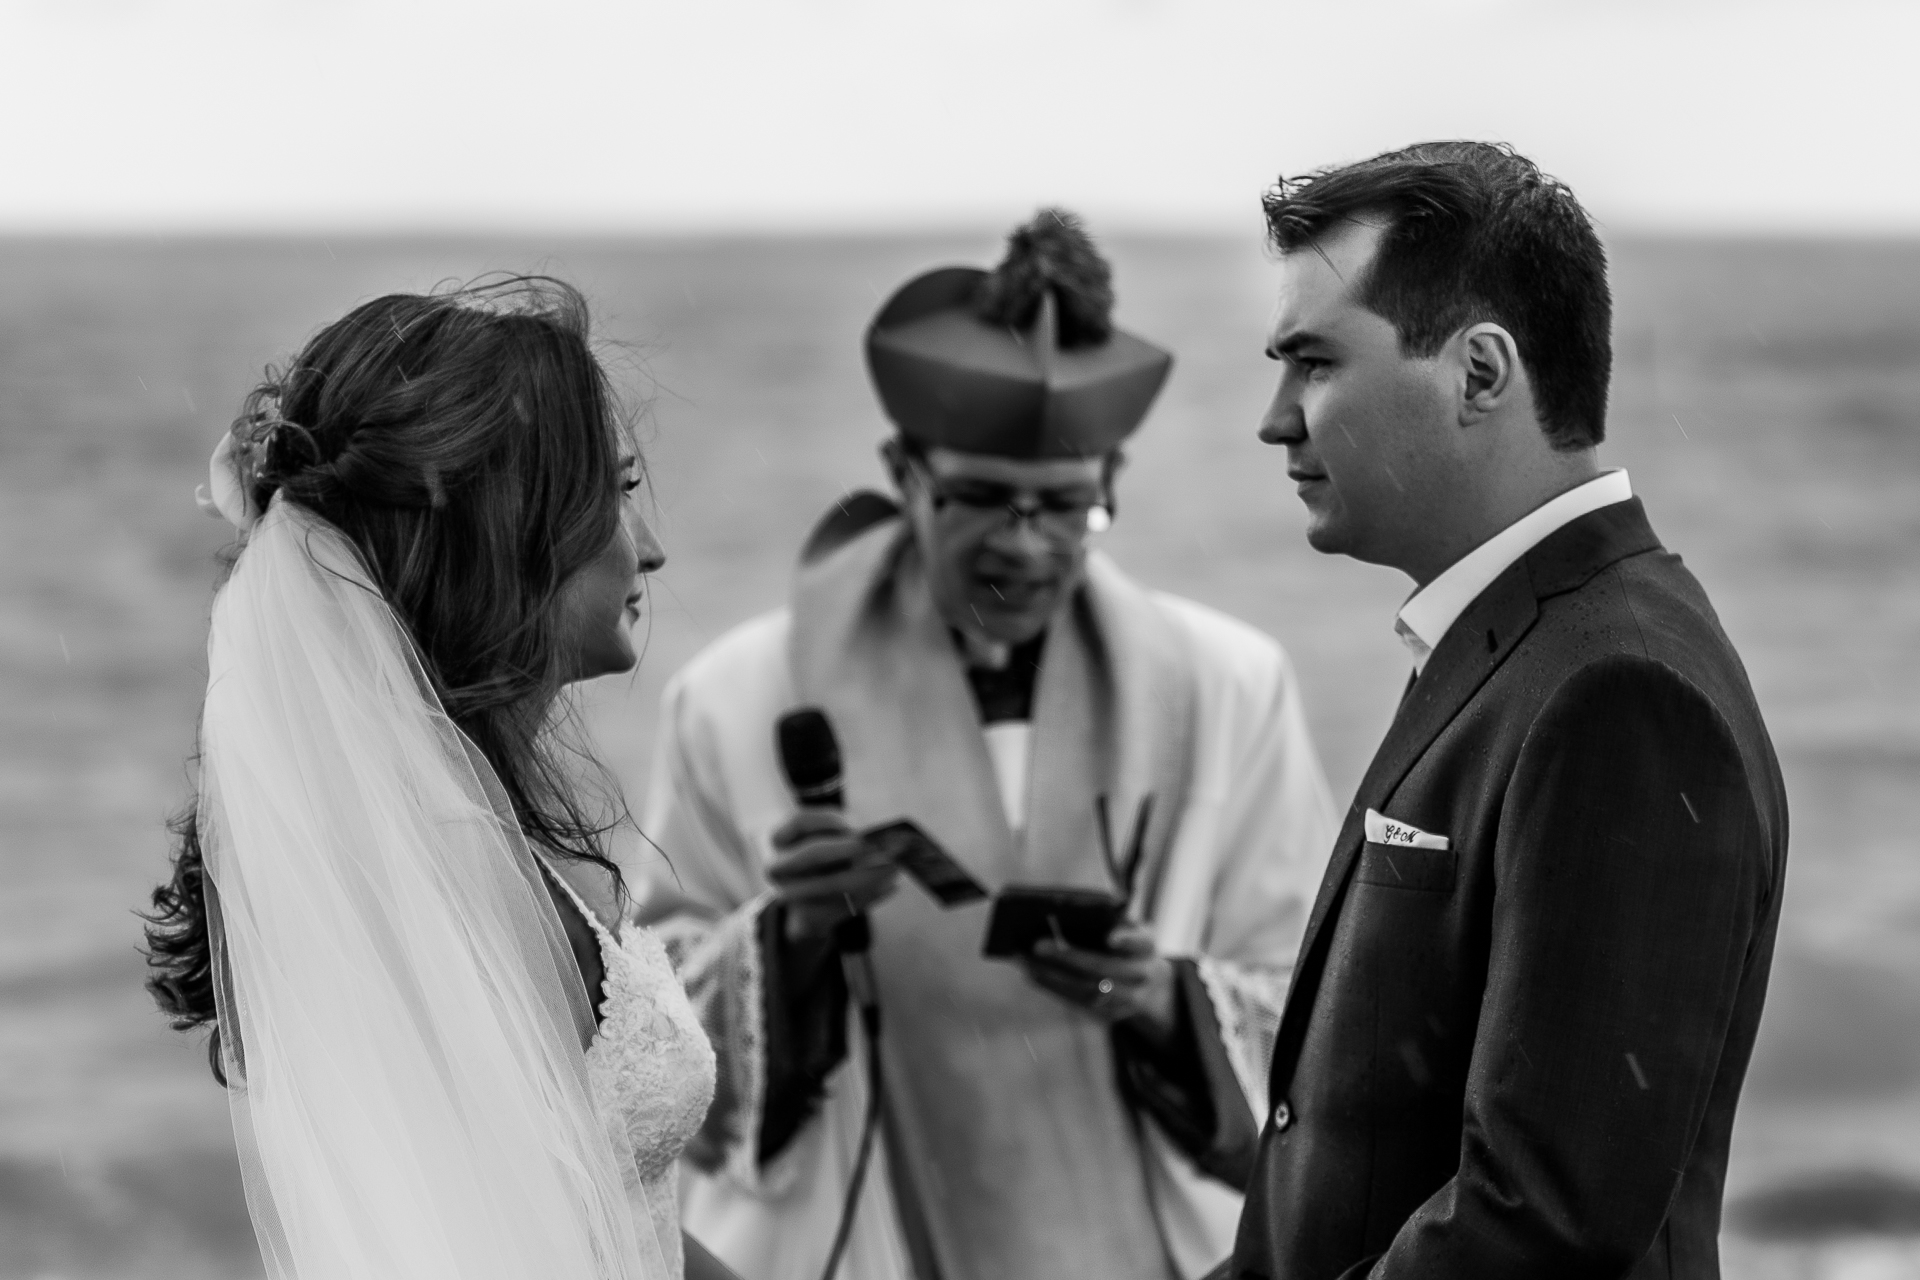 Pousada Reserva do Patacho wedding image from Brazil | the bride and groom  look into each others eyes in the midst of their wedding ceremony